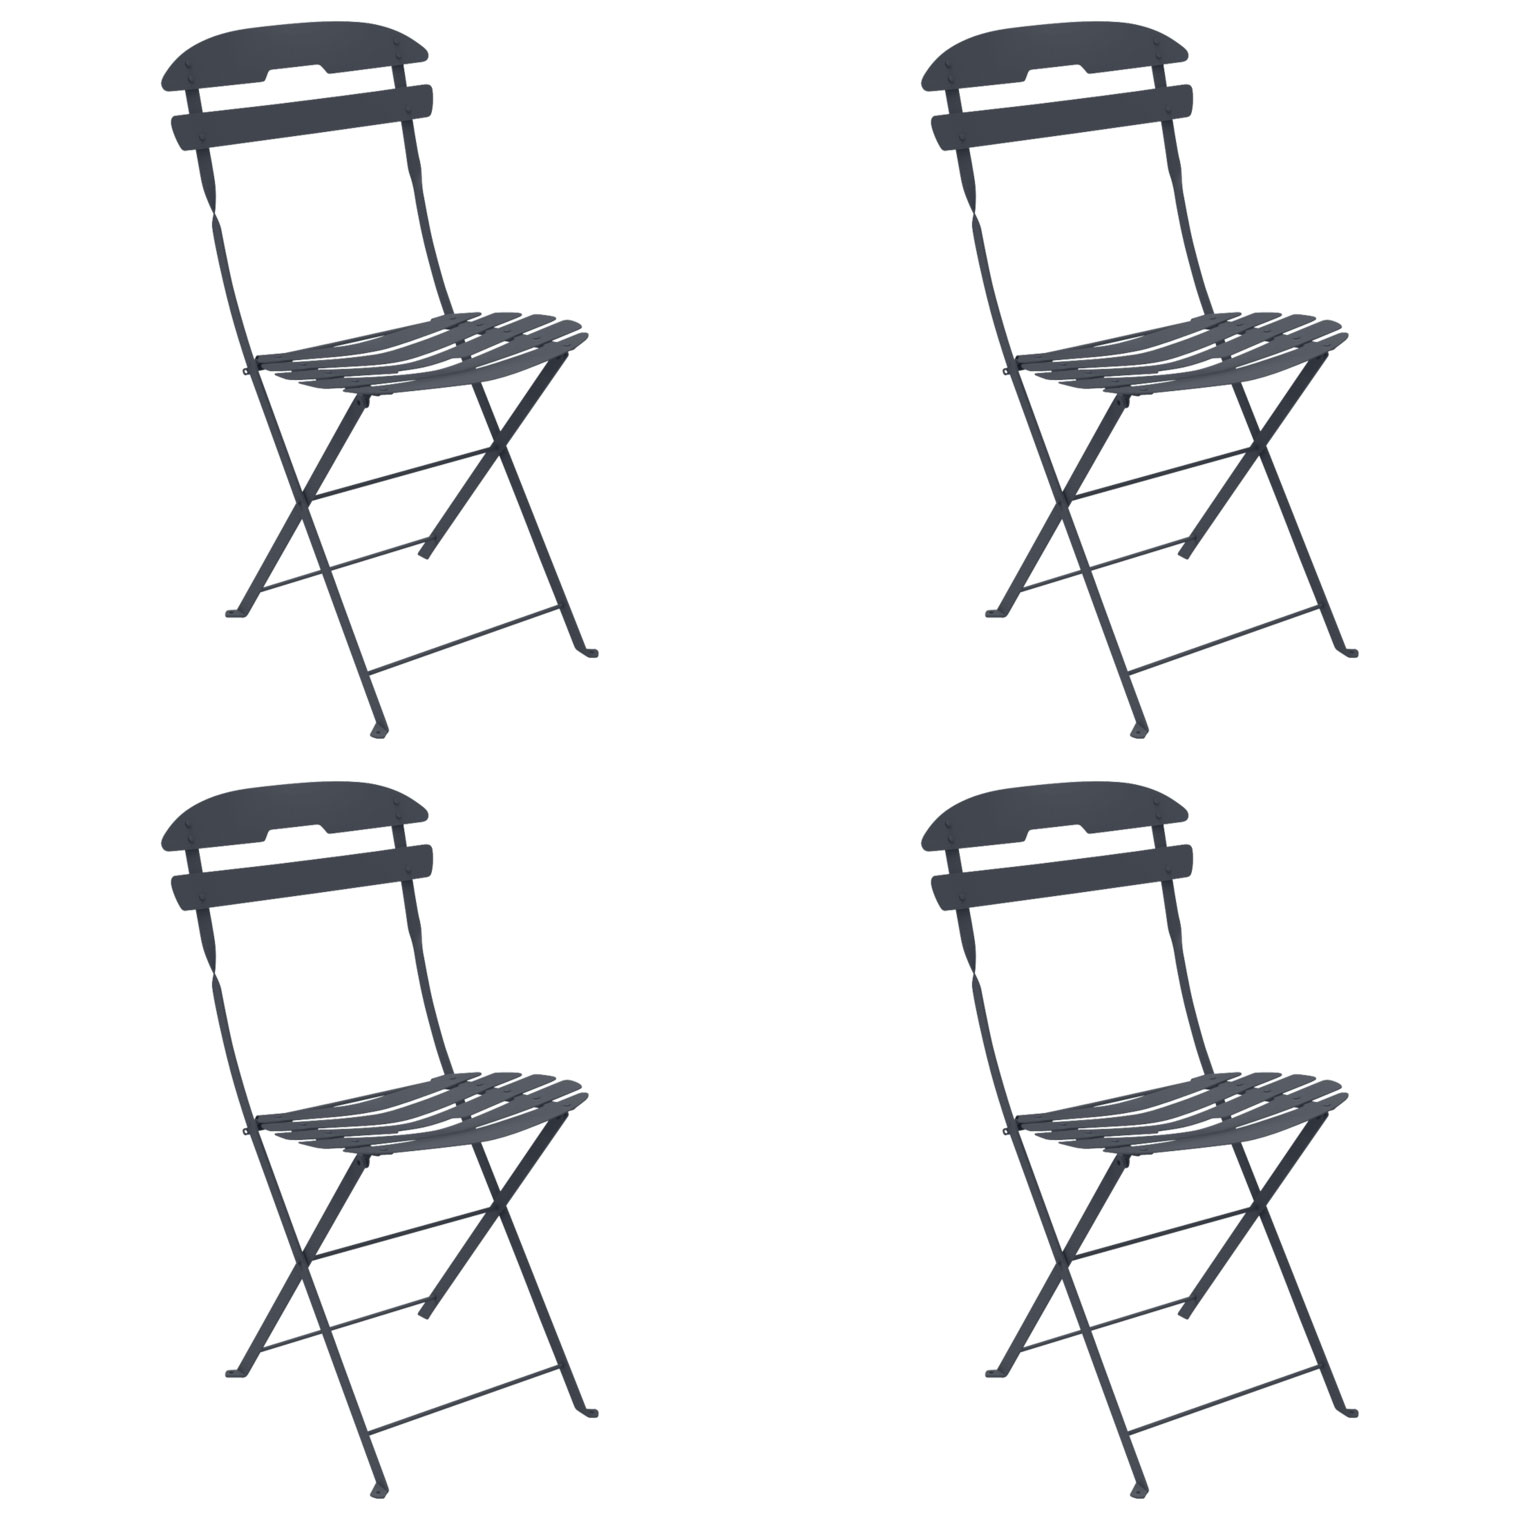 La Mome Folding Chair Set of 4 24 colours